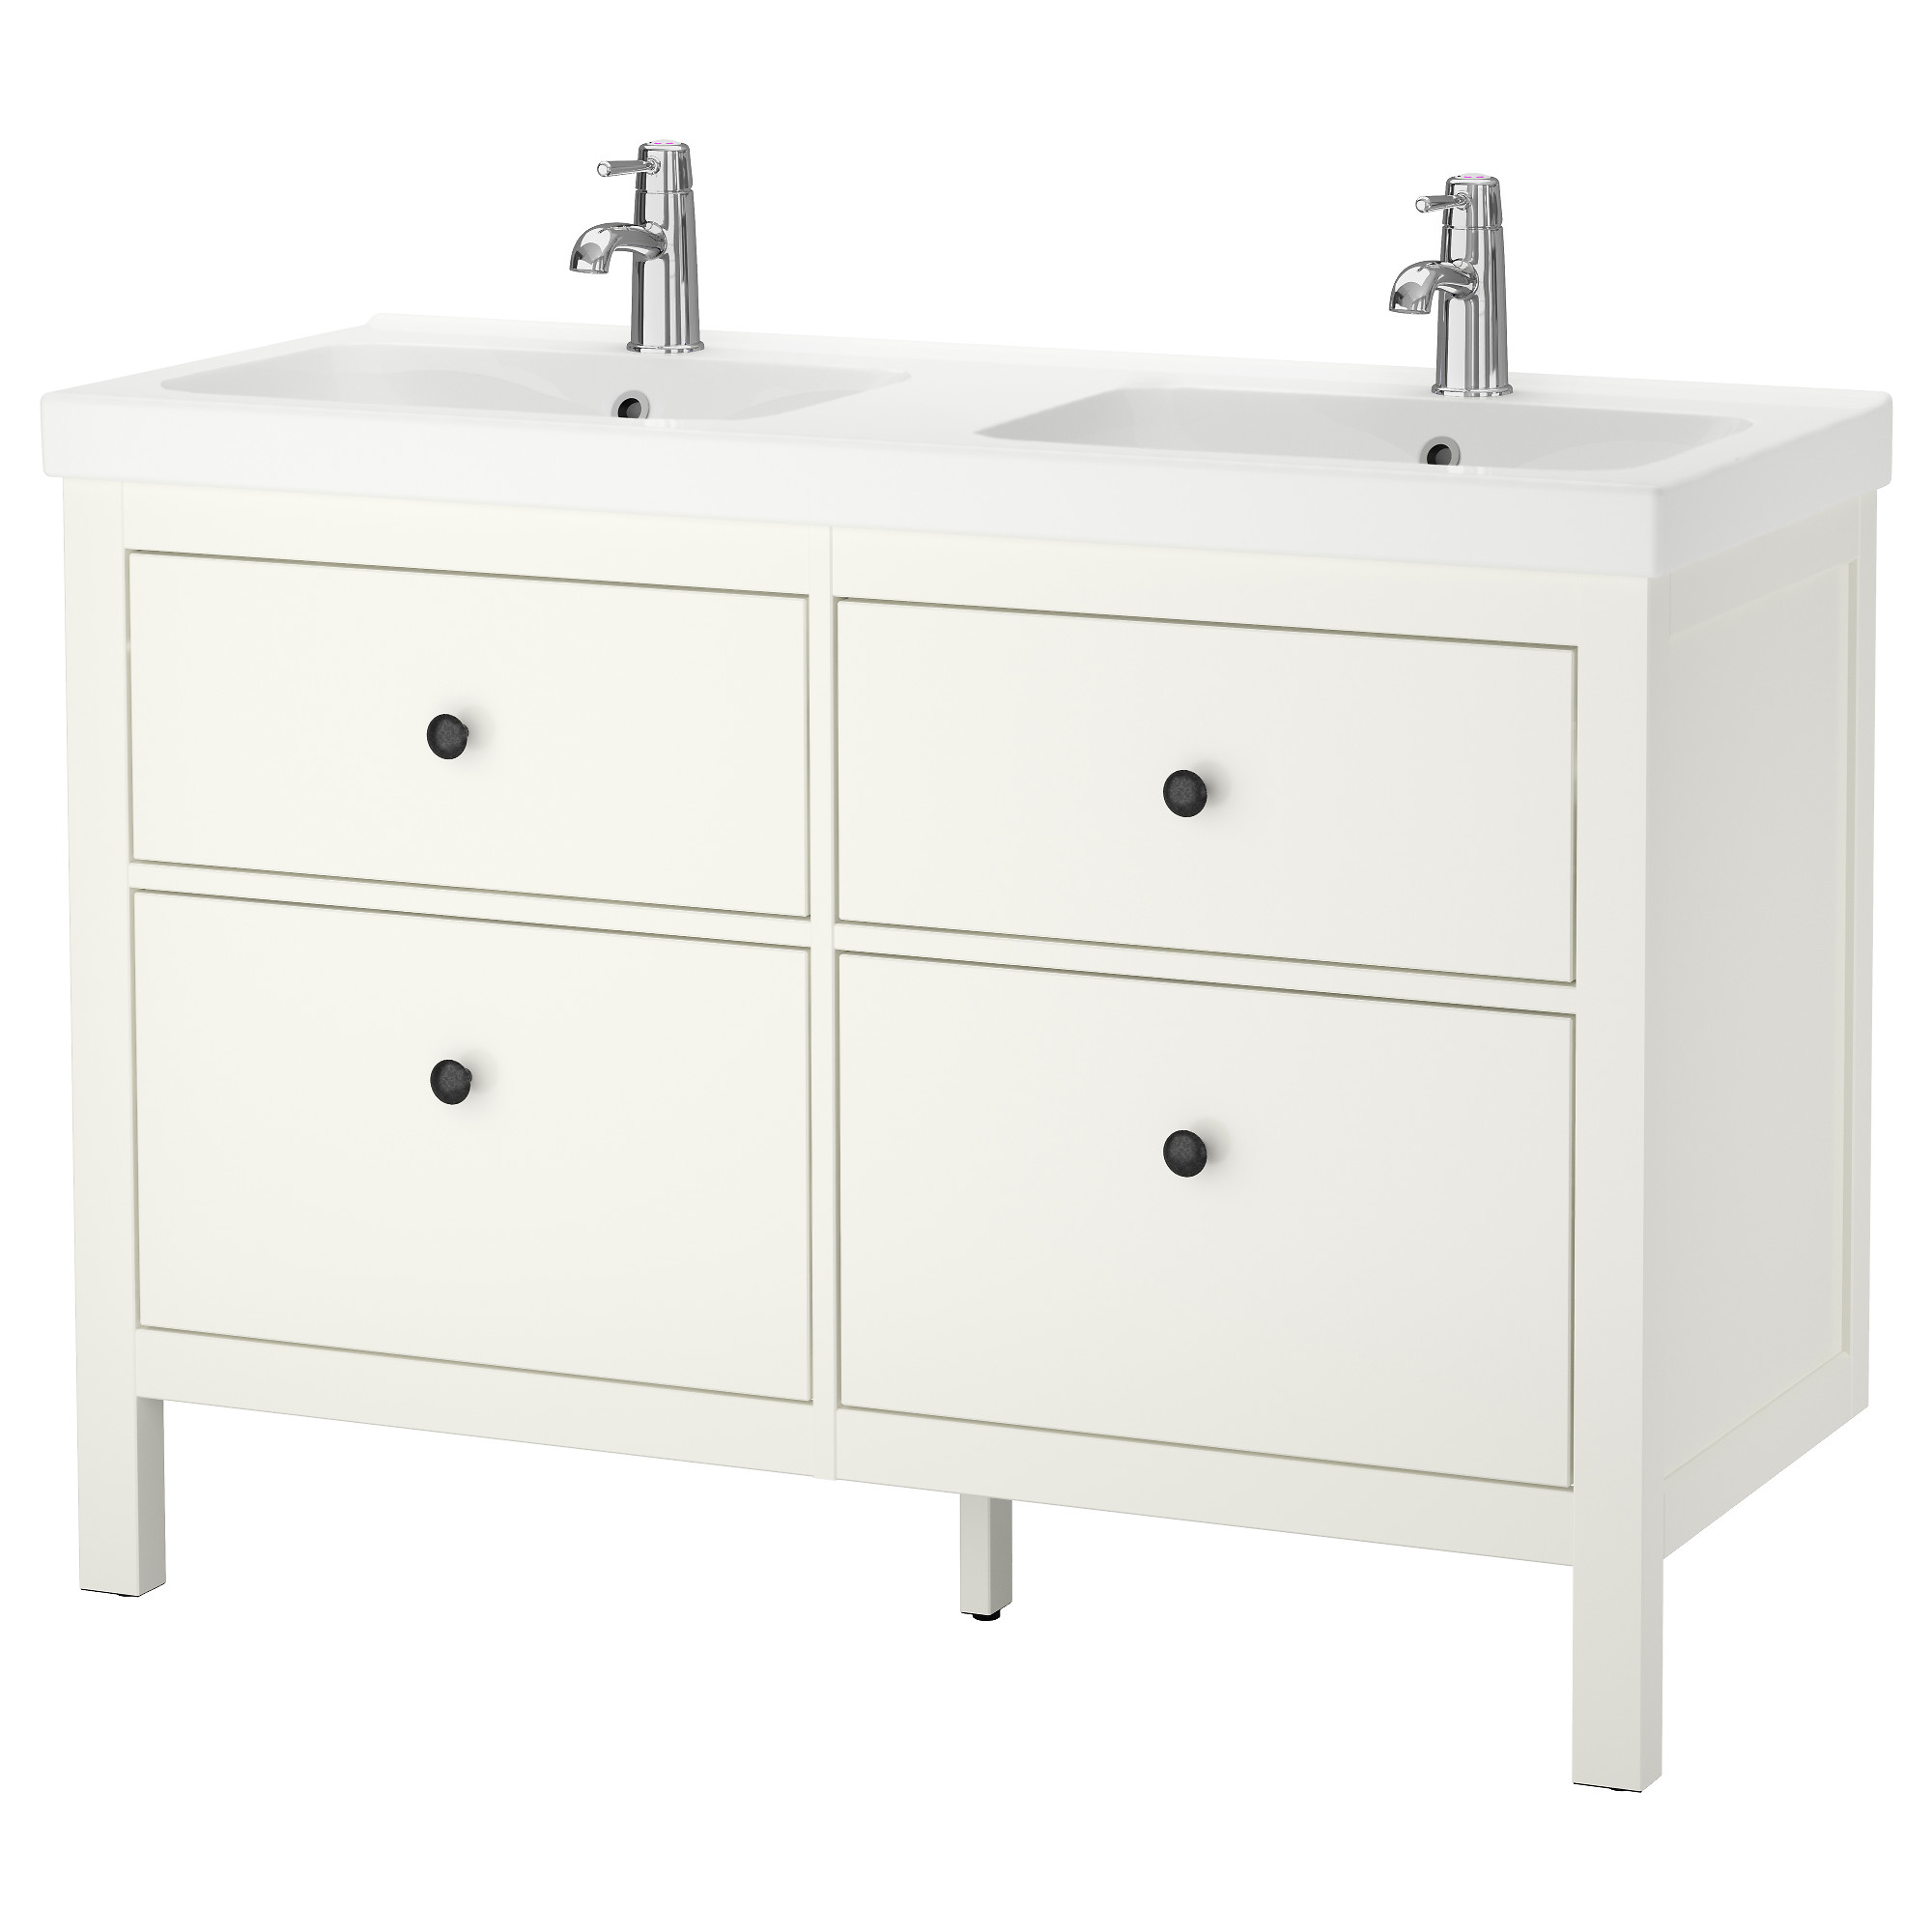 bathroom sink cabinets white. hemnes / odensvik sink cabinet with 4 drawers, white width: 47 1/4 bathroom cabinets 0